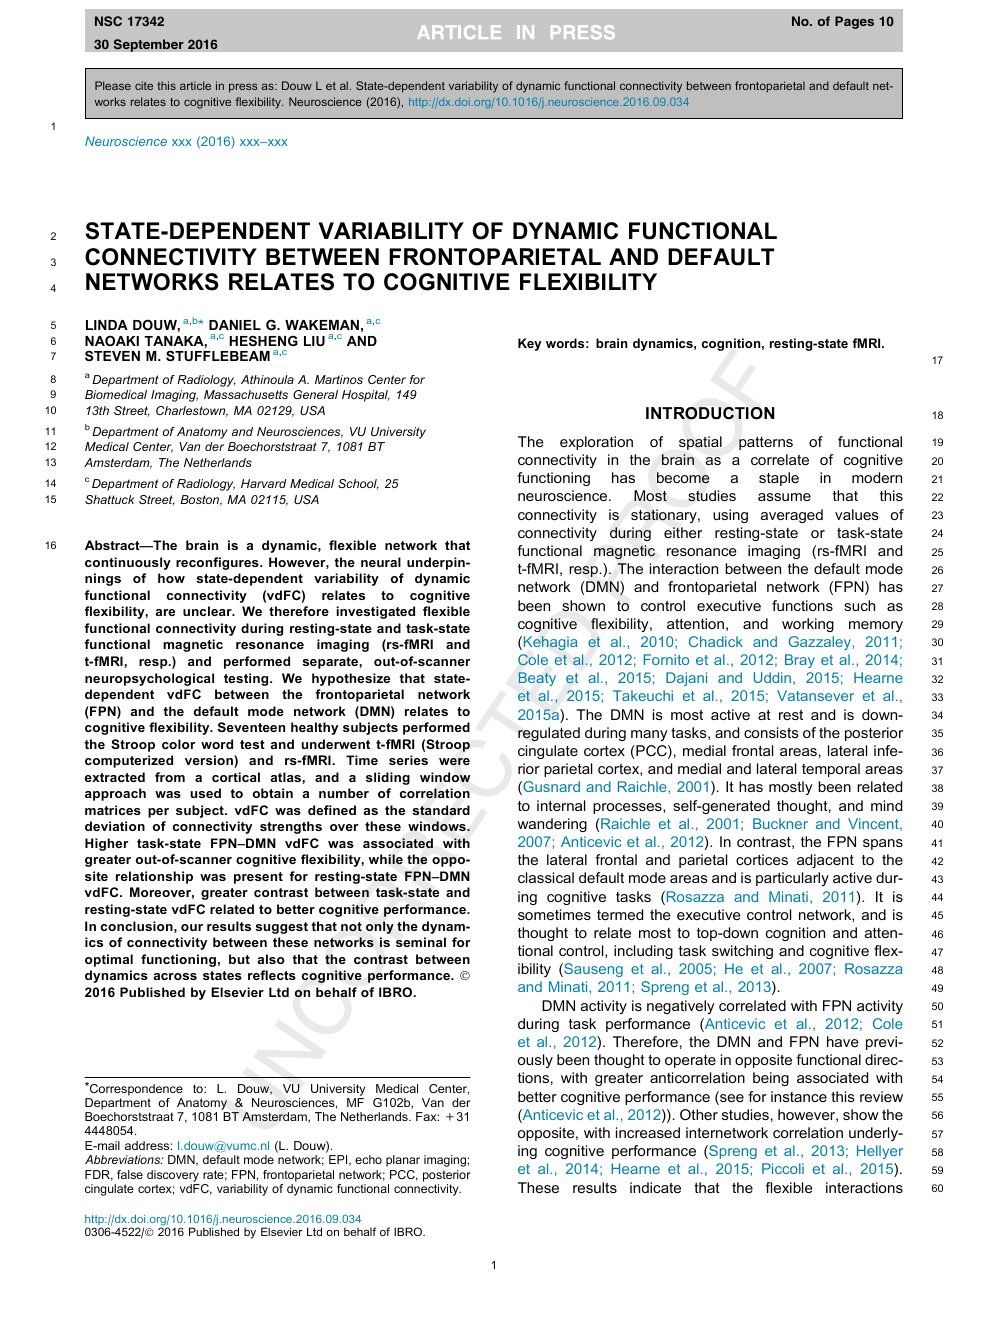 State-dependent variability of dynamic functional